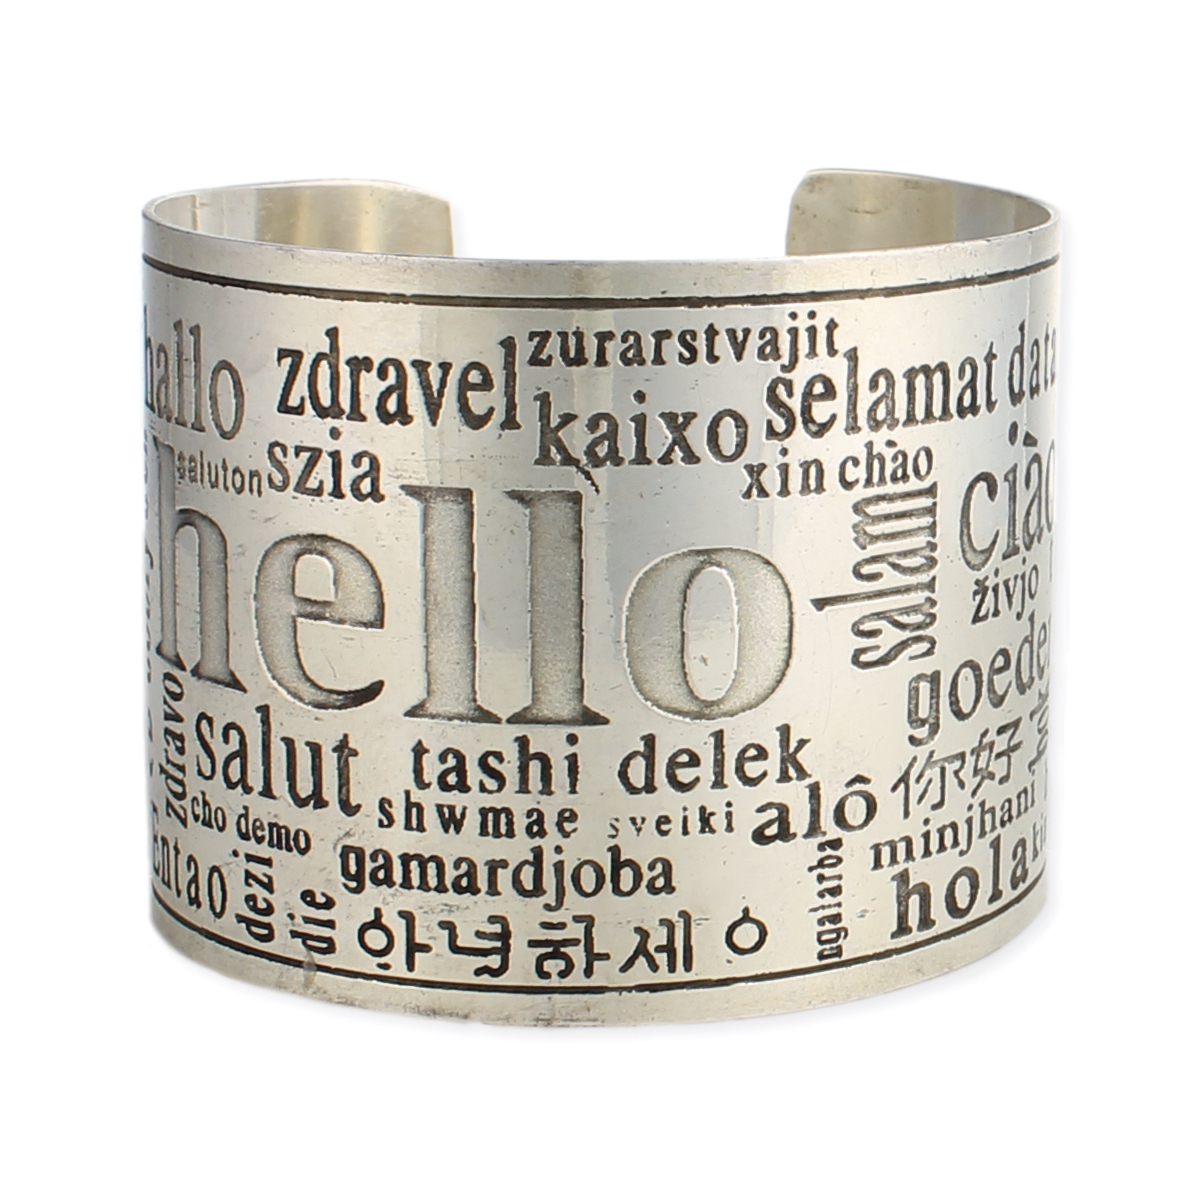 The Hello Cuff. Silver cuff bracelet with the word hello in English and several other languages.